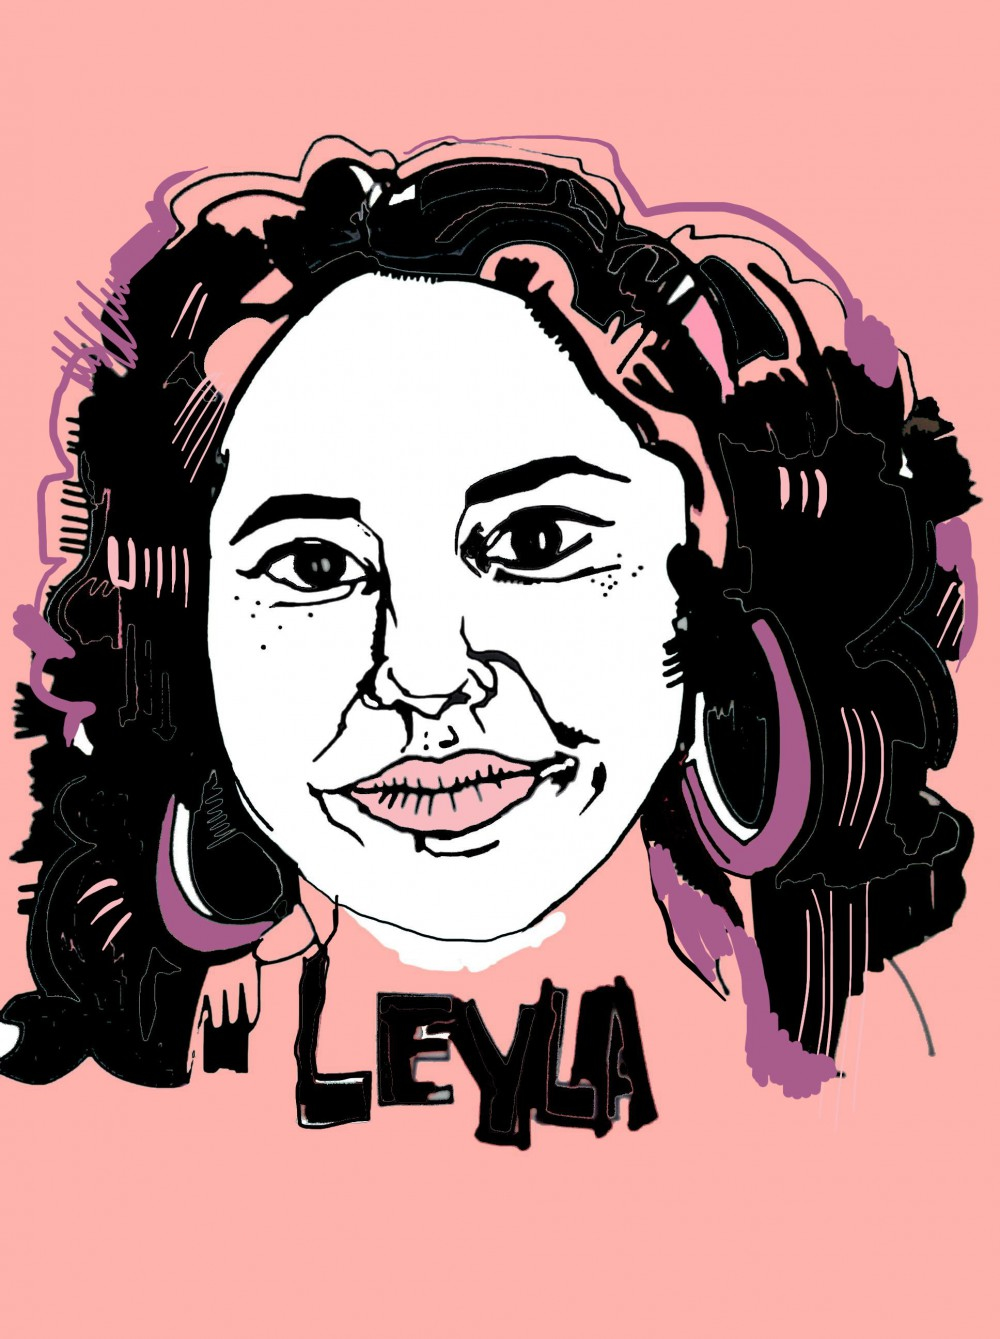 Meet the gal-dem: Leyla Reynolds